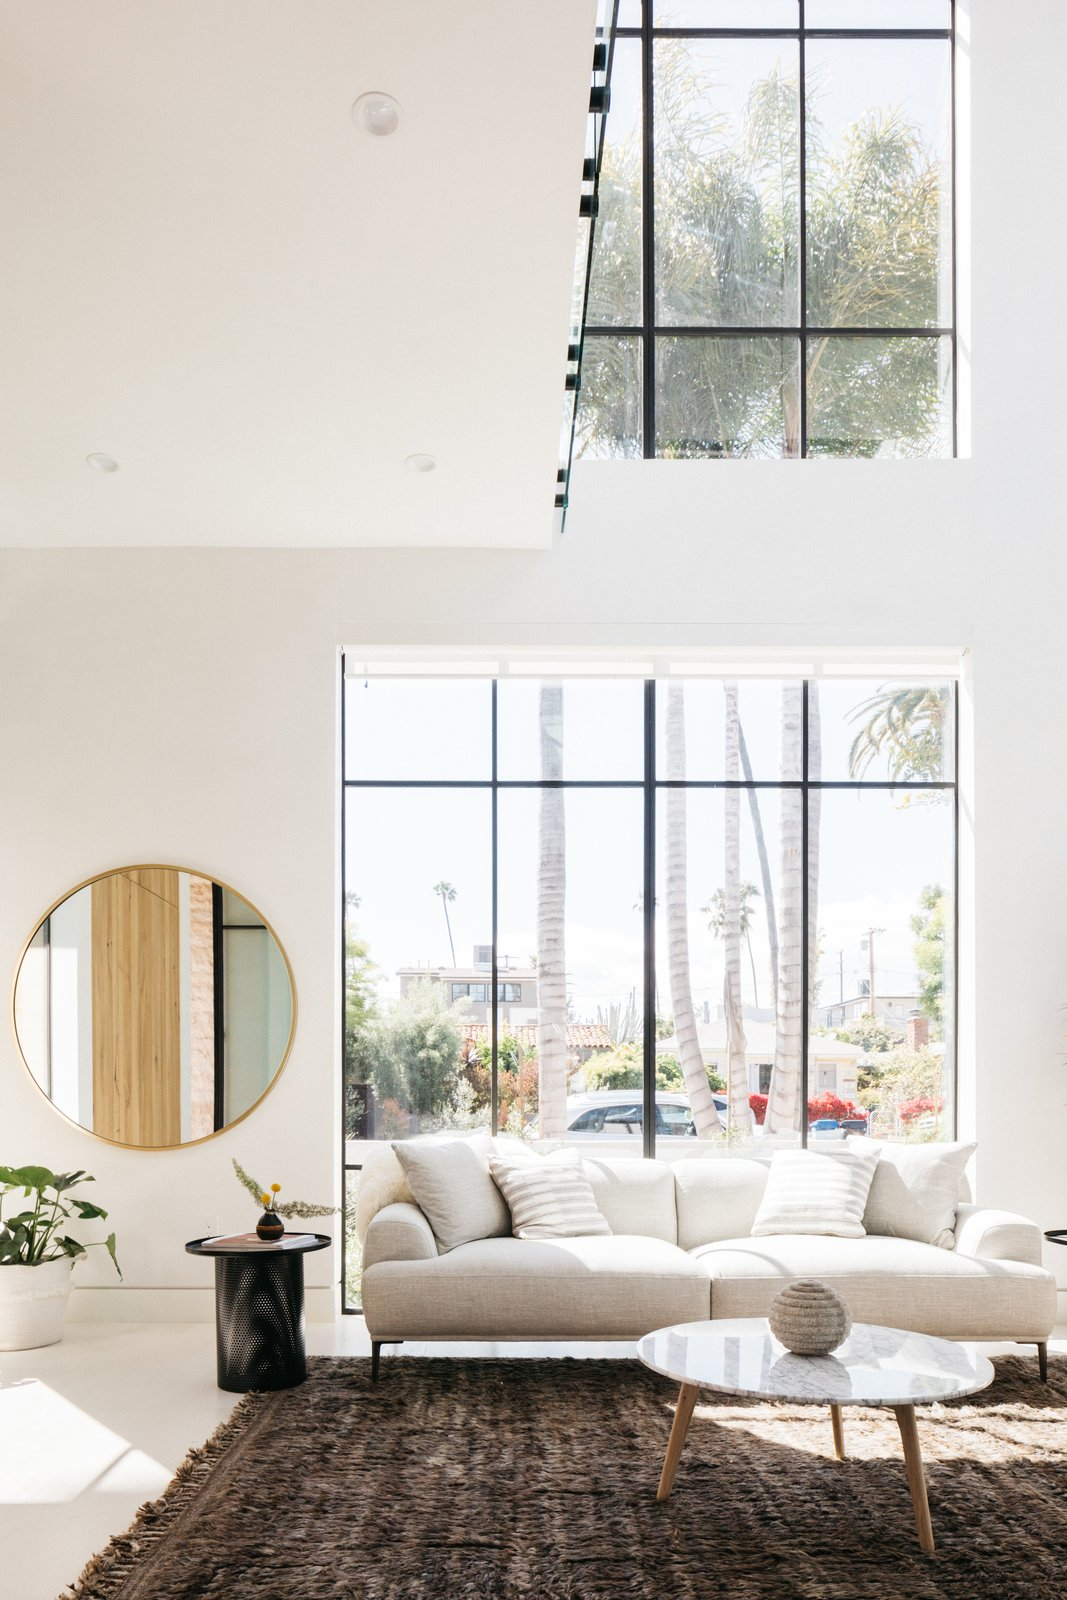 Living Room, Ceiling Lighting, Concrete Floor, Recessed Lighting, Coffee Tables, Sectional, and Rug Floor The main entrance of the house leads into the open living space, which hosts the living room, dining area, and kitchen.  Milwood Residence by Mayes Office